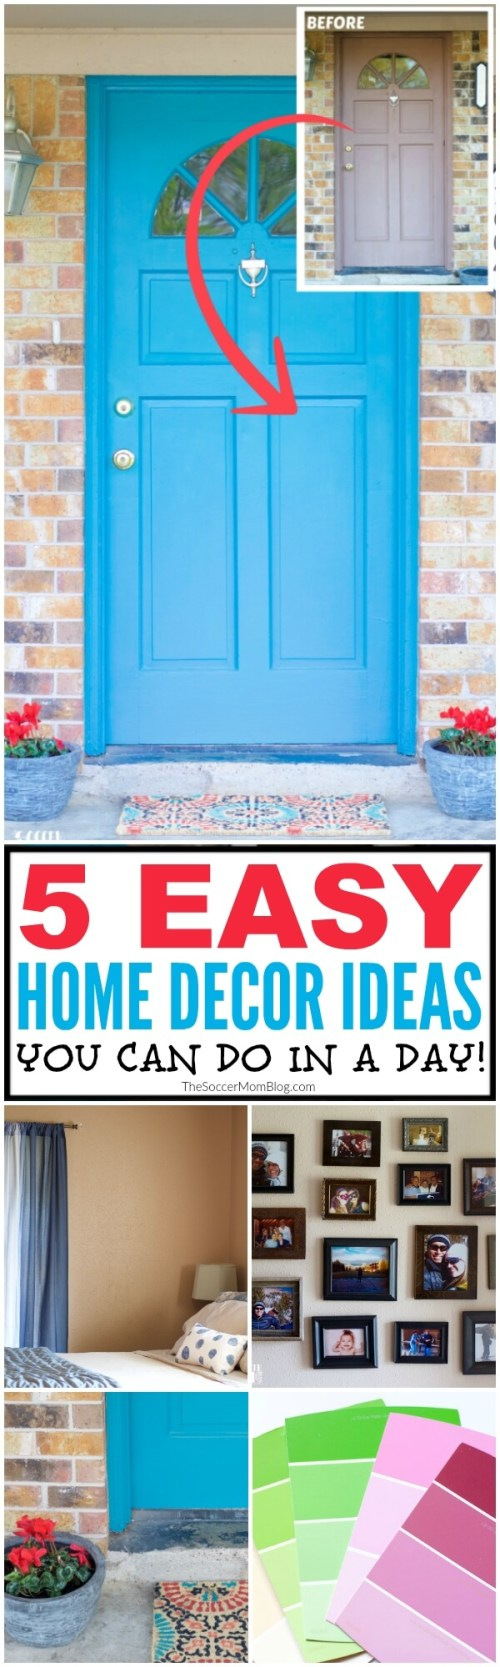 Even if you live in a rental home or apartment, you can still make it beautiful! 5 fast & easy home decor ideas you can DIY...even on a tight budget!